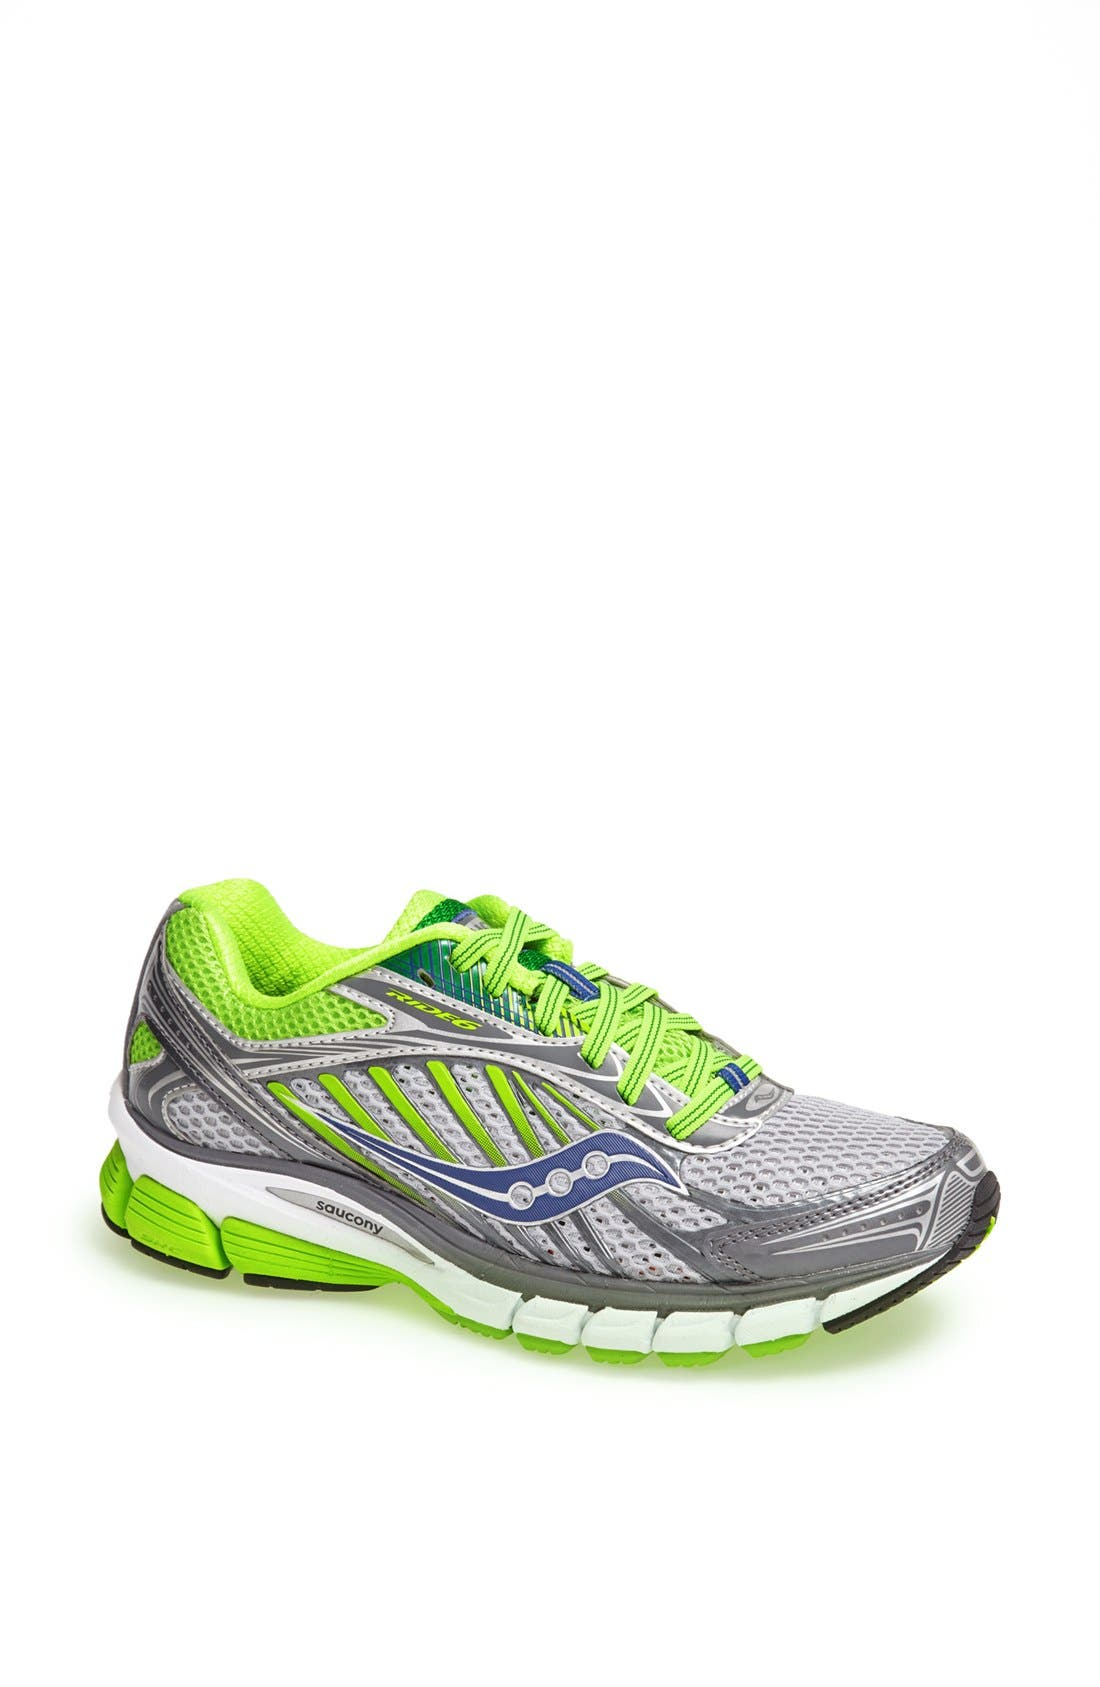 Alternate Image 1 Selected - Saucony 'Ride 6' Running Shoe (Women)